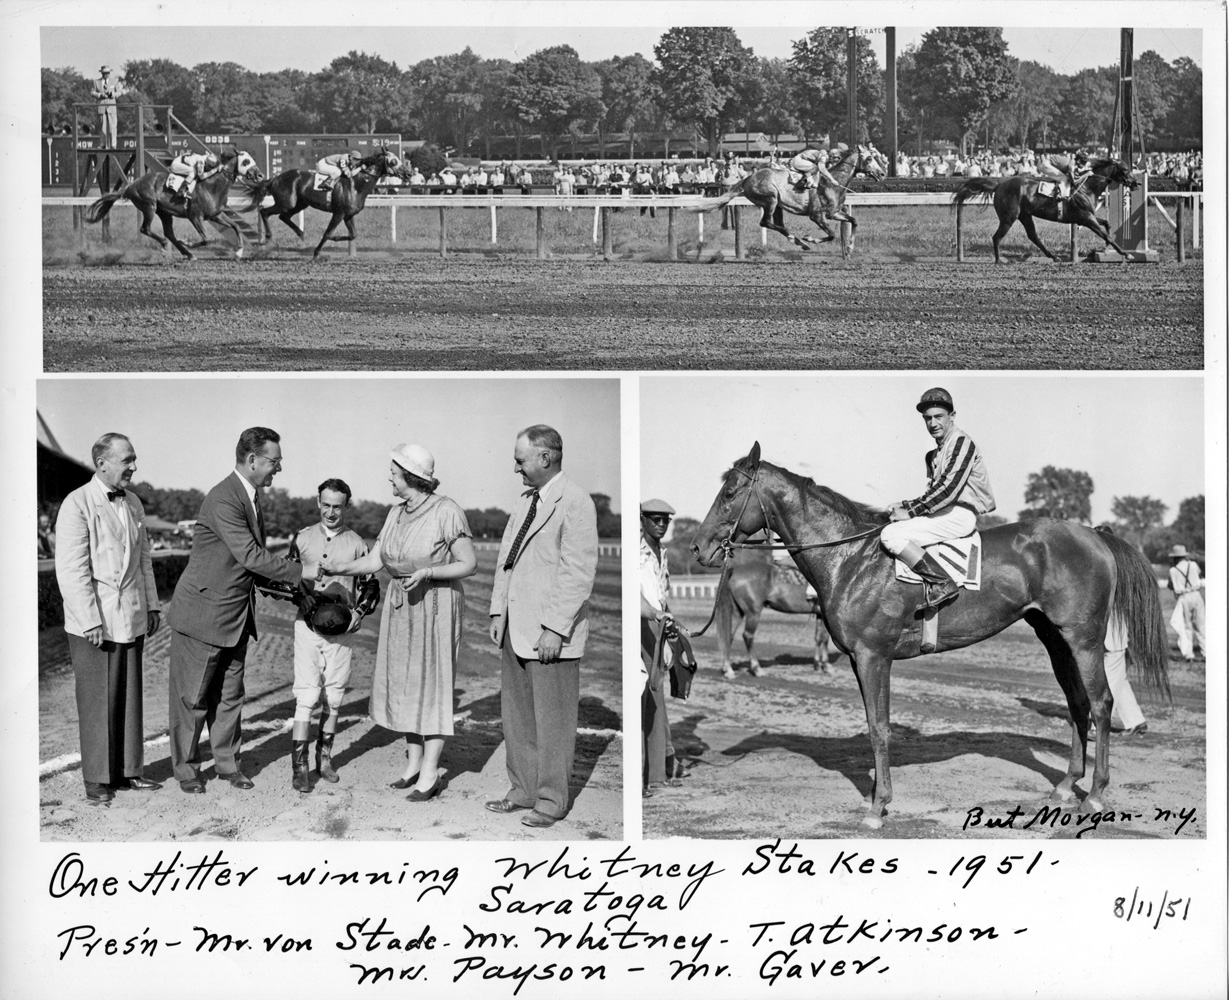 Win composite photograph for the 1951 Whitney Stakes won by Greentree Stable's One Hitter (Ted Atkinson up) (Bert Morgan/Museum Collection)